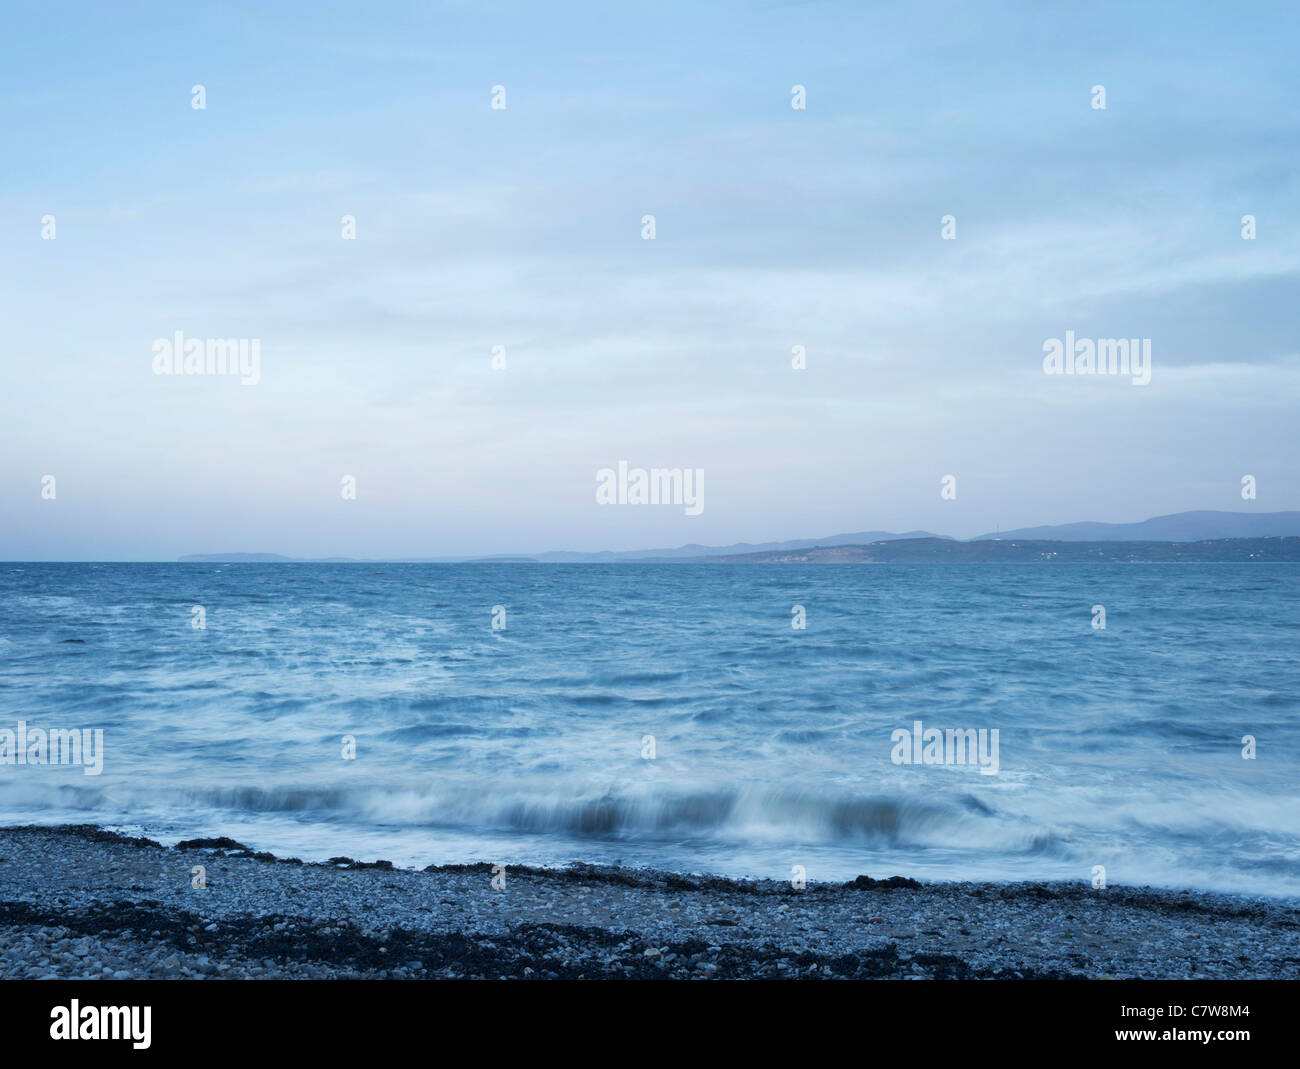 Anglesey seascape at dusk with pebble beach, with moving seas and sunset sky and mountains in the distance. - Stock Image